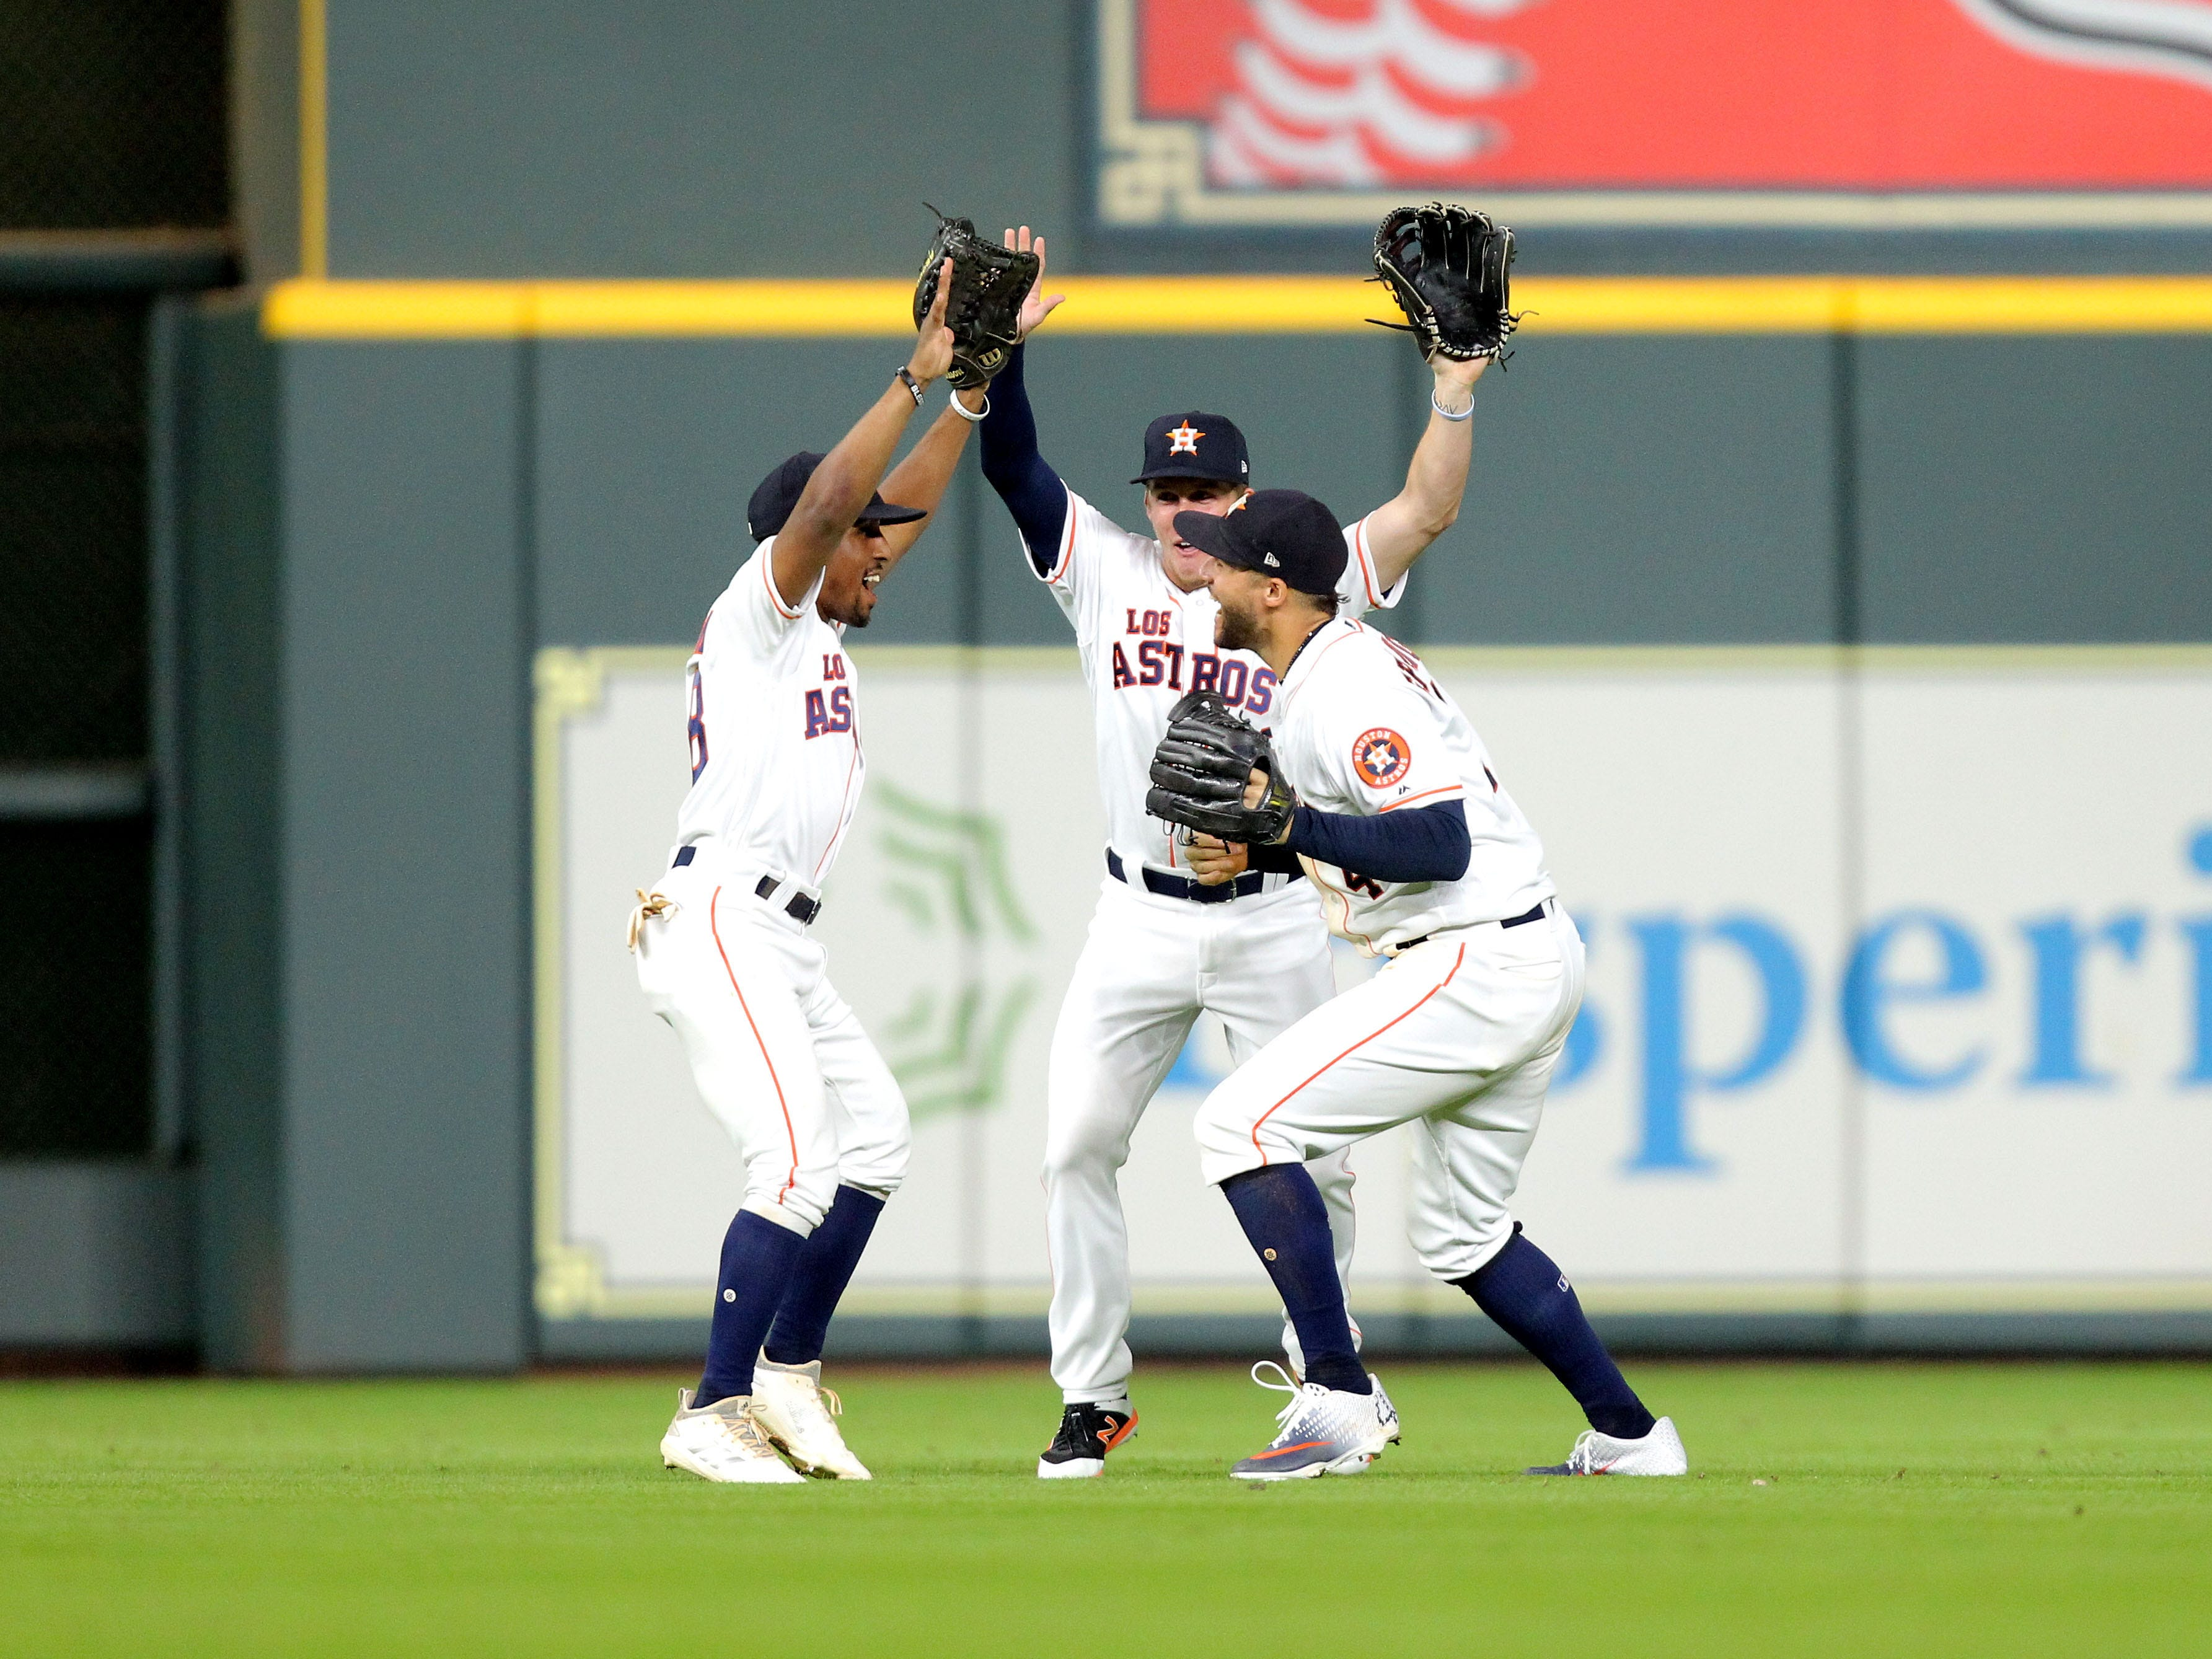 Sep 15, 2018; Houston, TX, USA; The Houston Astros outfielders celebrate after the final out of Houston's 10-4 win over the Arizona Diamondbacks at Minute Maid Park. Mandatory Credit: Erik Williams-USA TODAY Sports